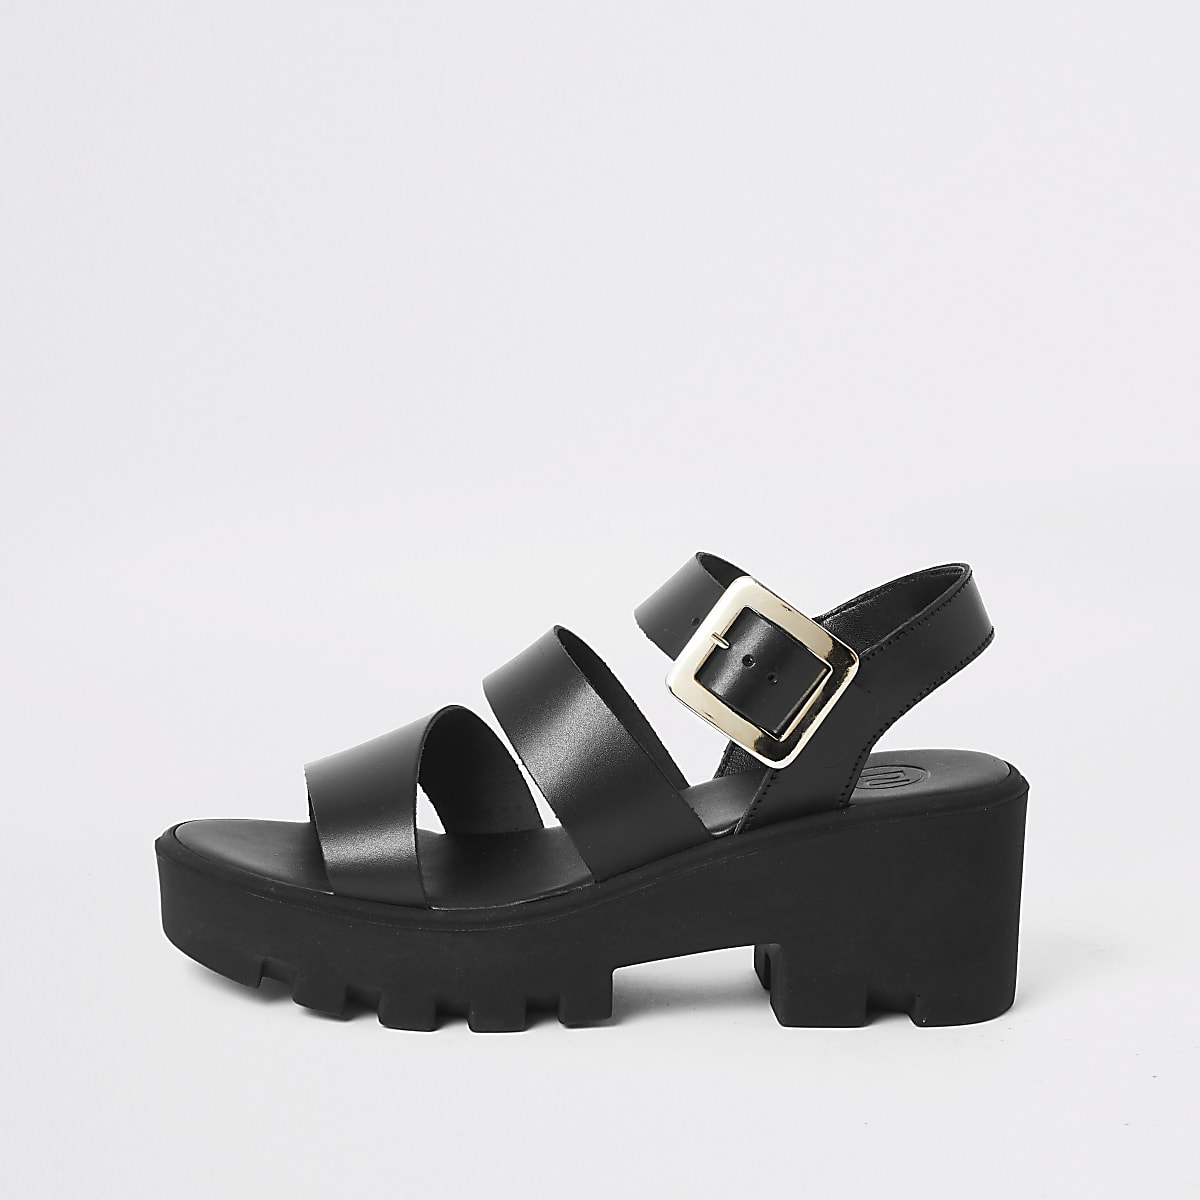 Black cleated sandals